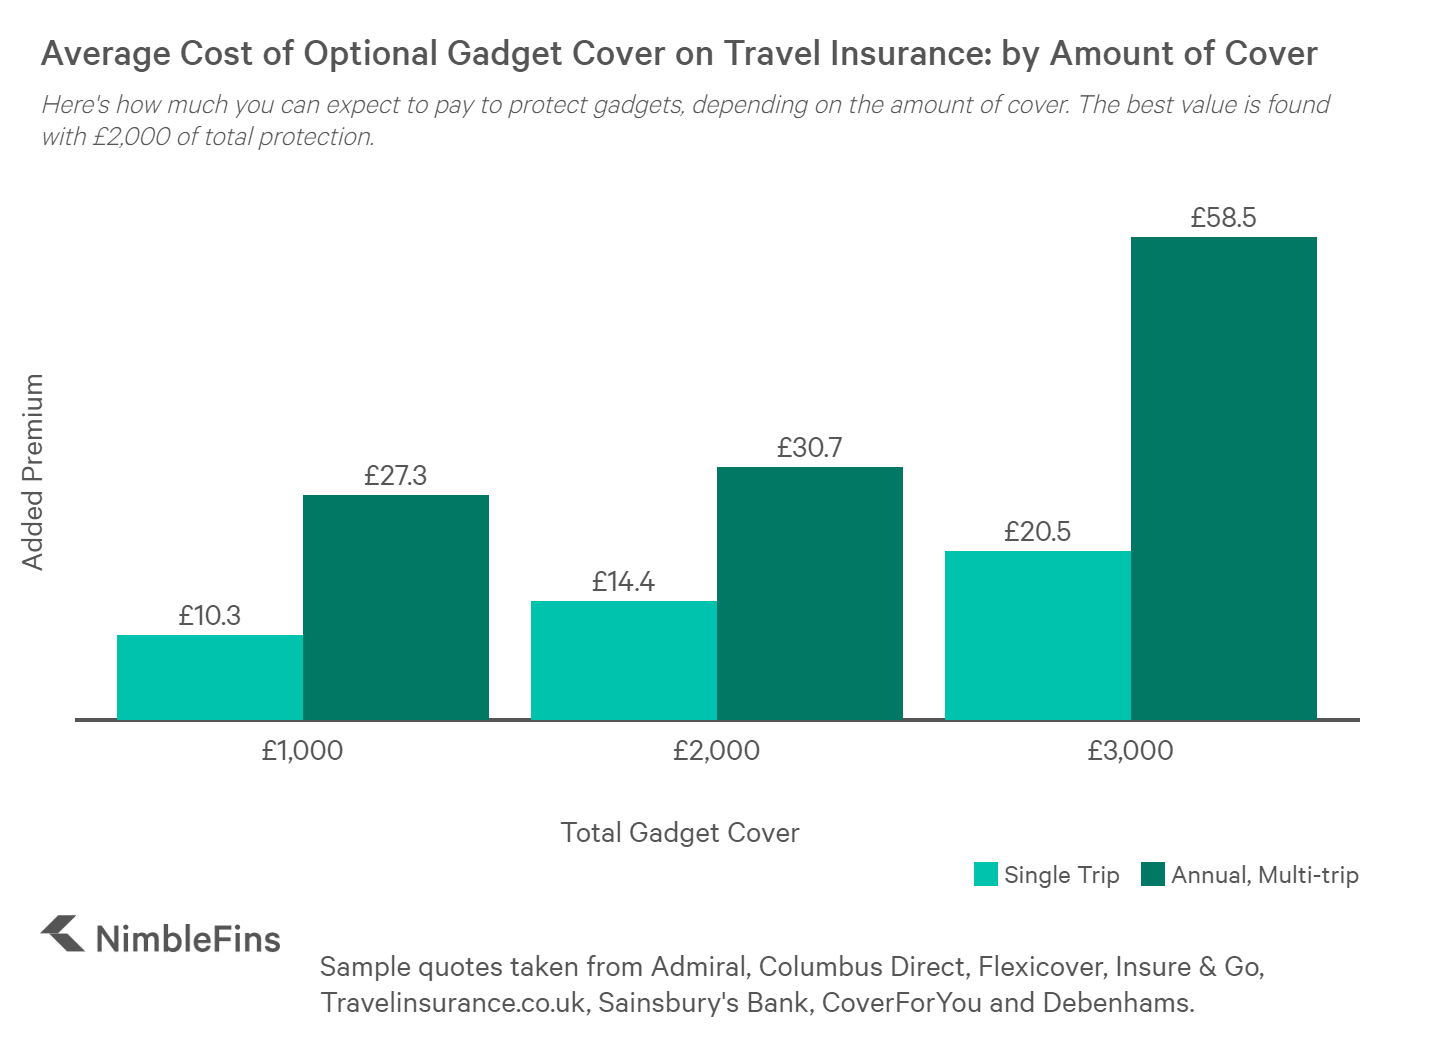 chart showing the cost of optional gadget cover to travel insurance plans, by amount of cover